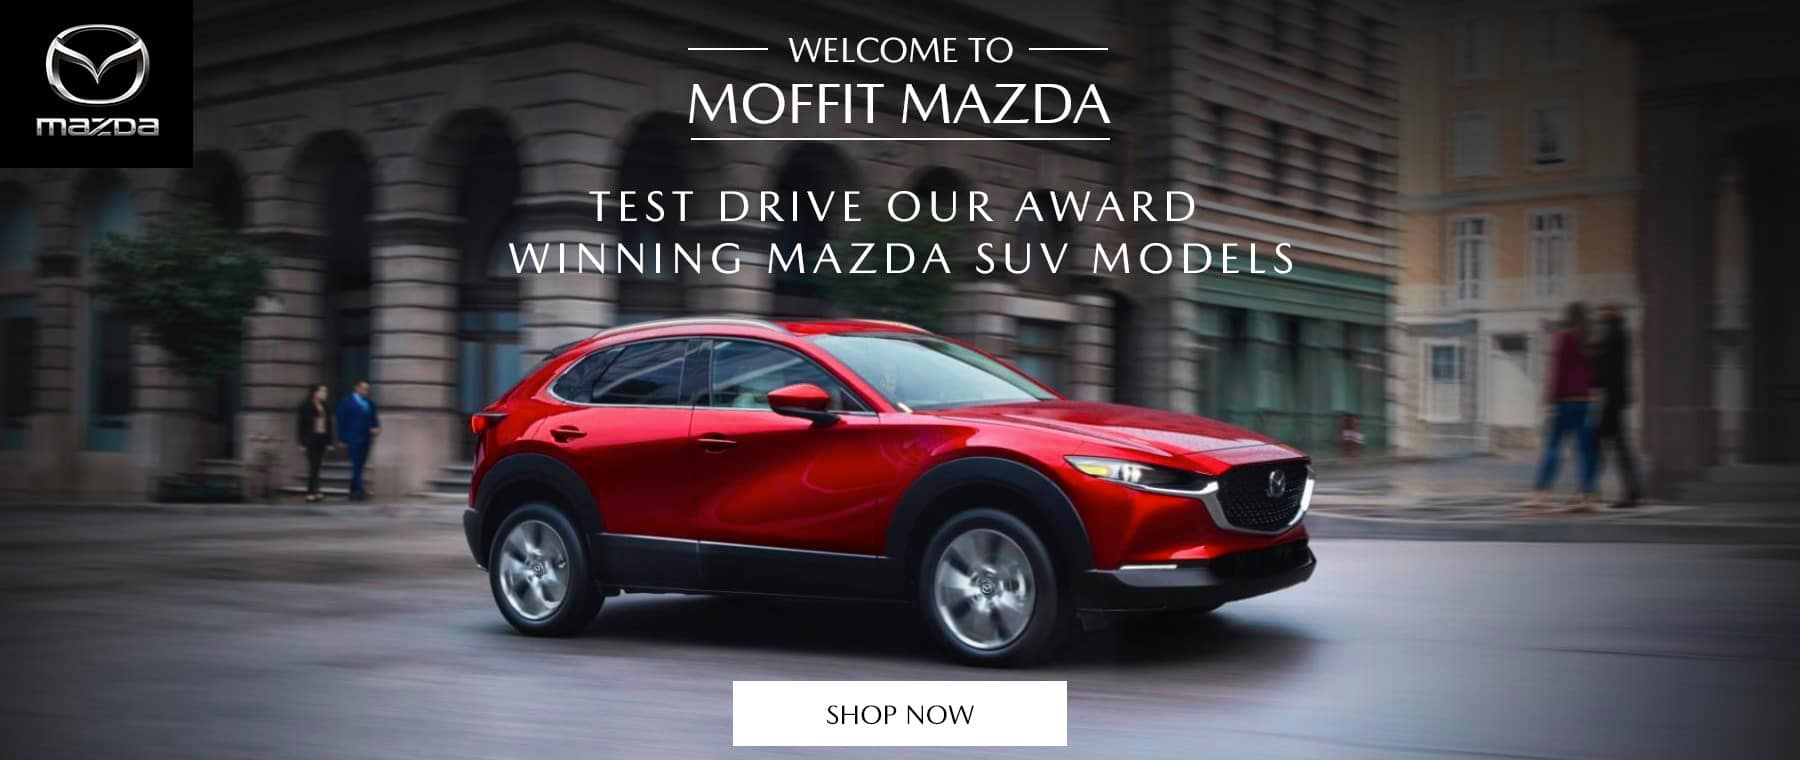 Welcome to Moffitt Mazda - Test drive our award winning Mazda SUV Models